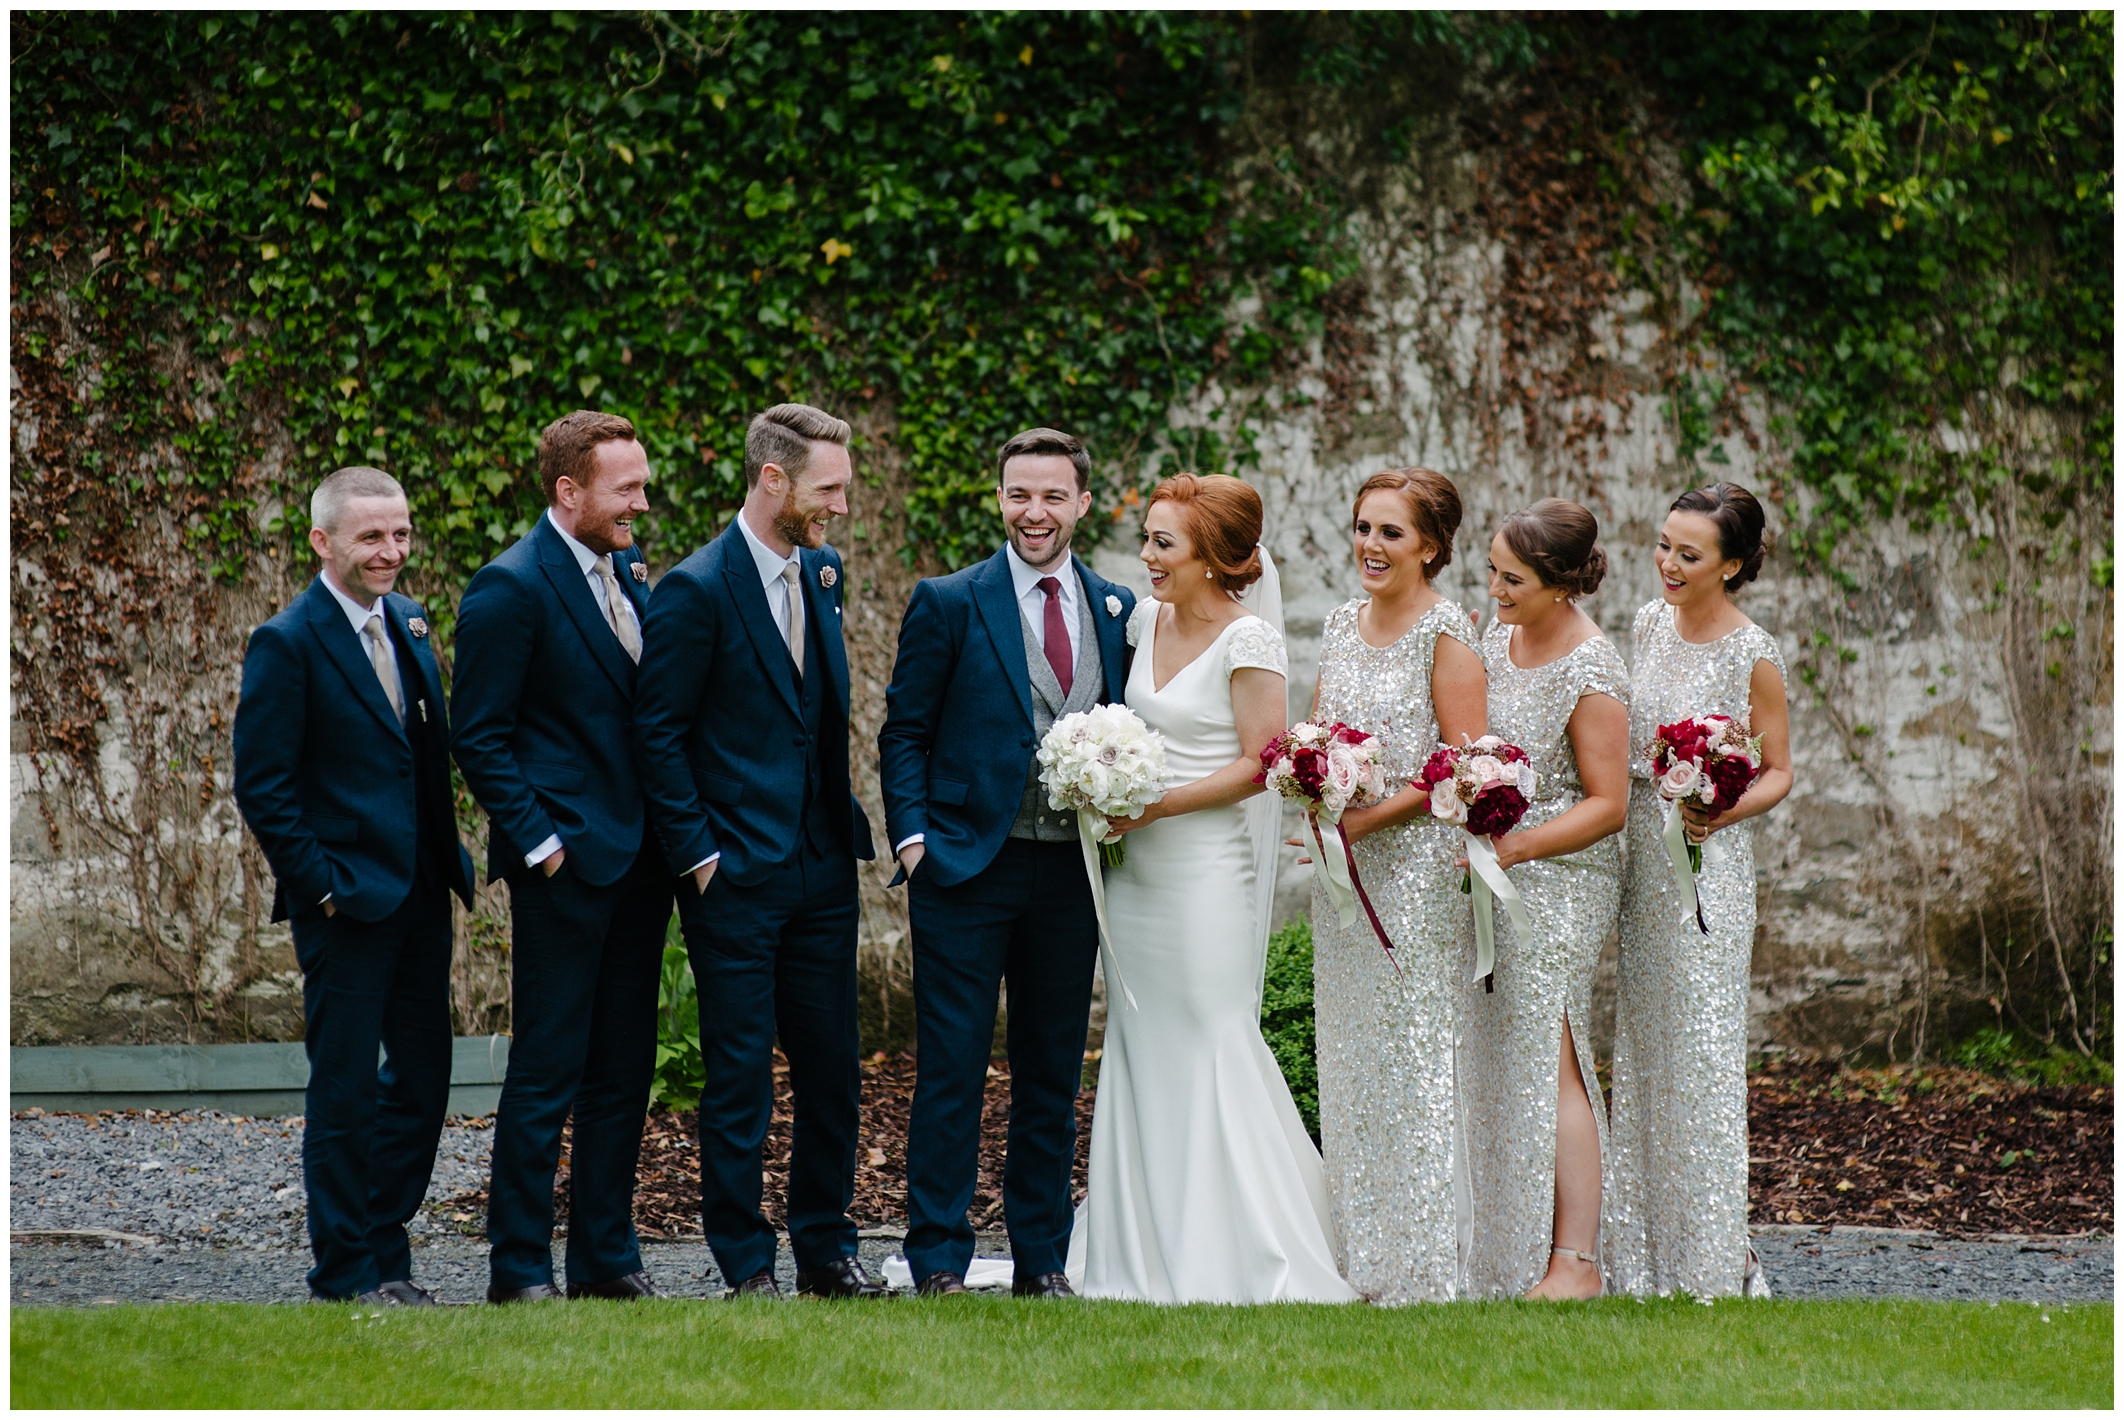 sinead_emmet_farnham_estate_wedding_jude_browne_photography_0099.jpg